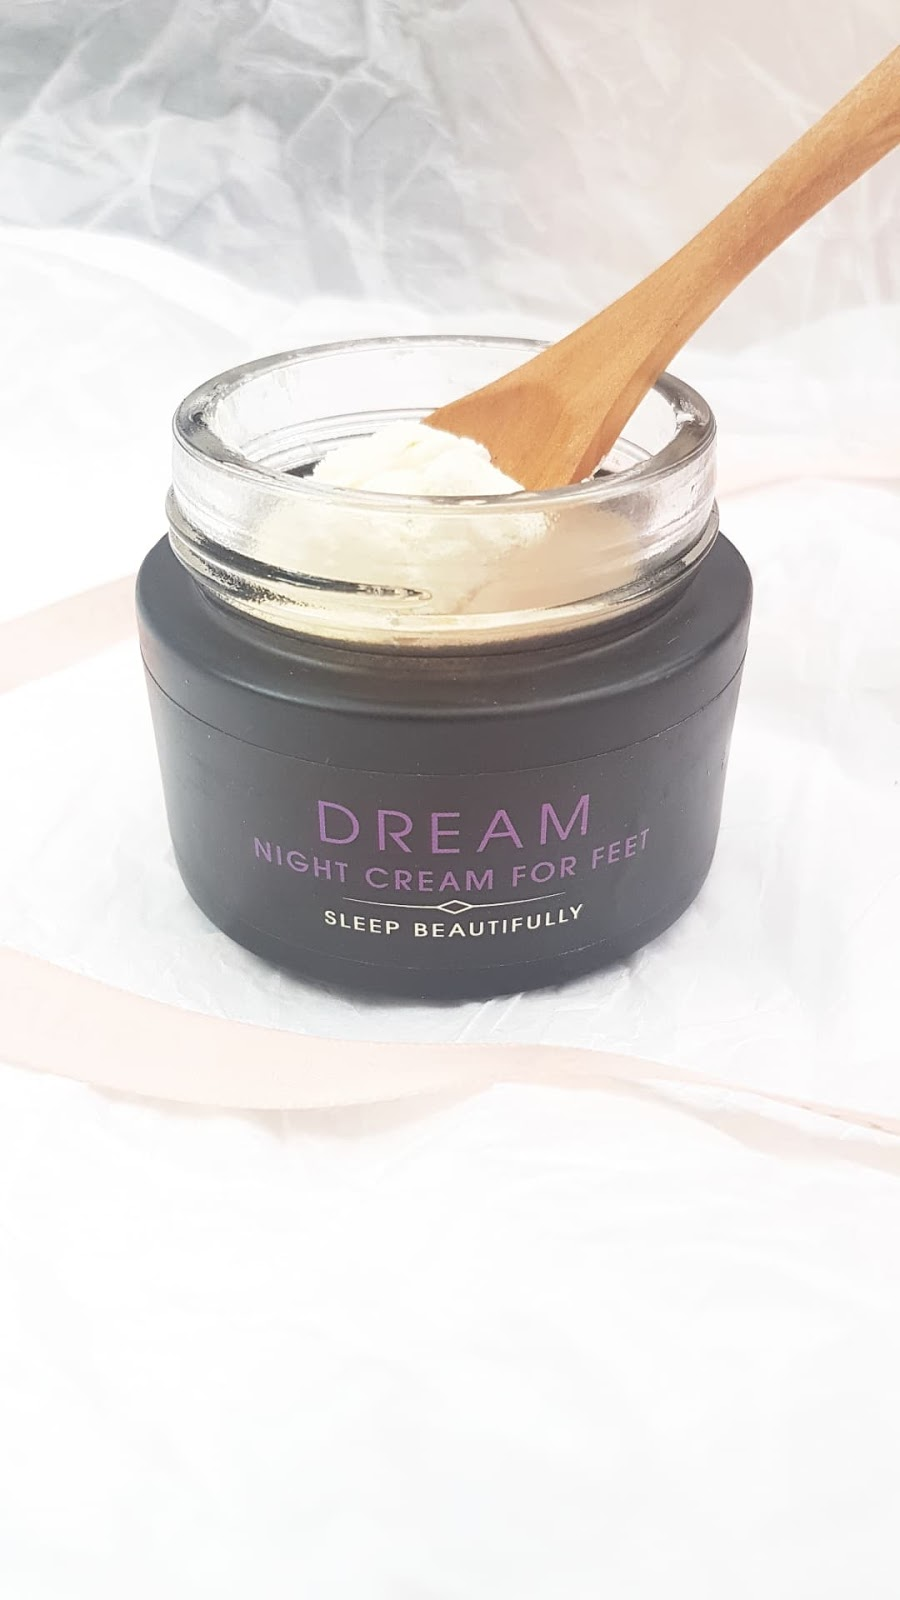 Kiss the Moon DREAM Night Cream for Feet Review